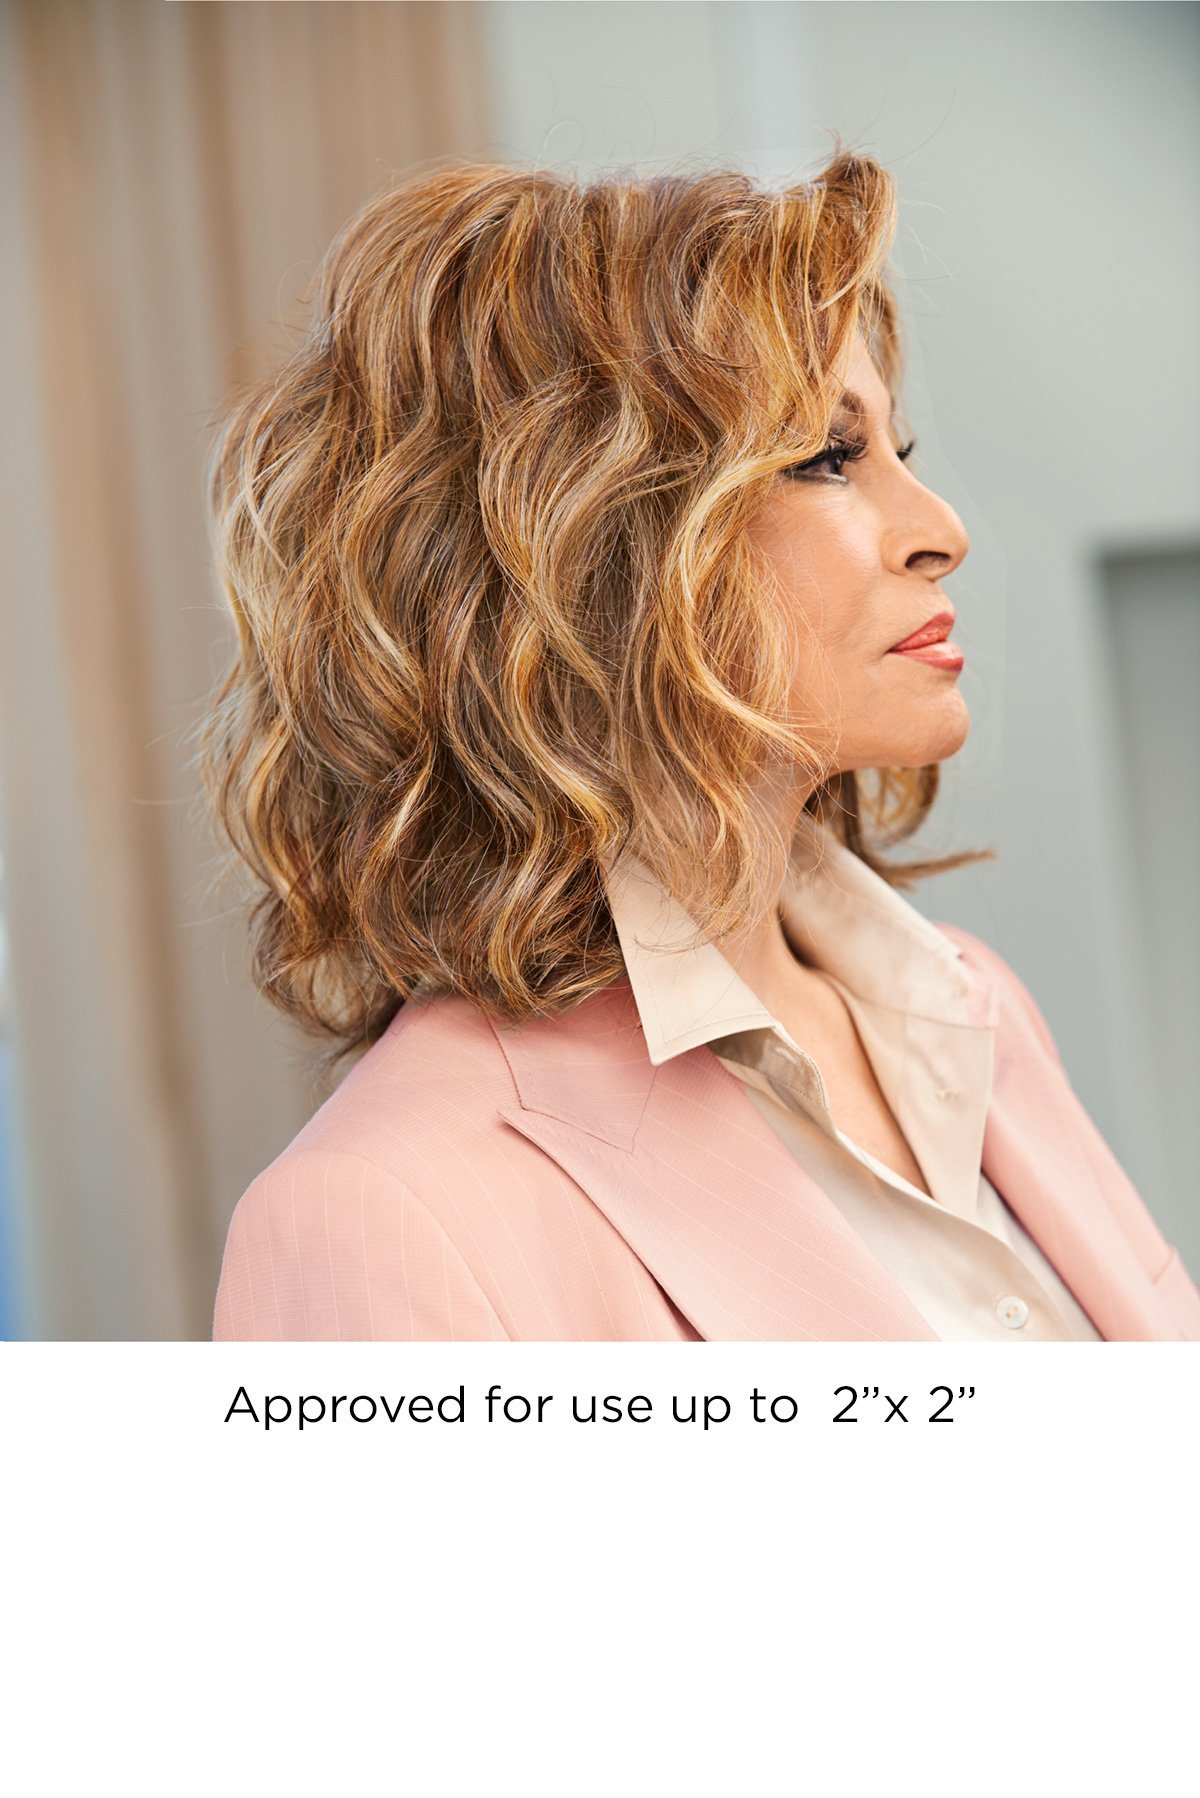 Hairdo Hairuwear Raquel Welch Collection Editor's Pick Top Quality Wig, Rl29/25